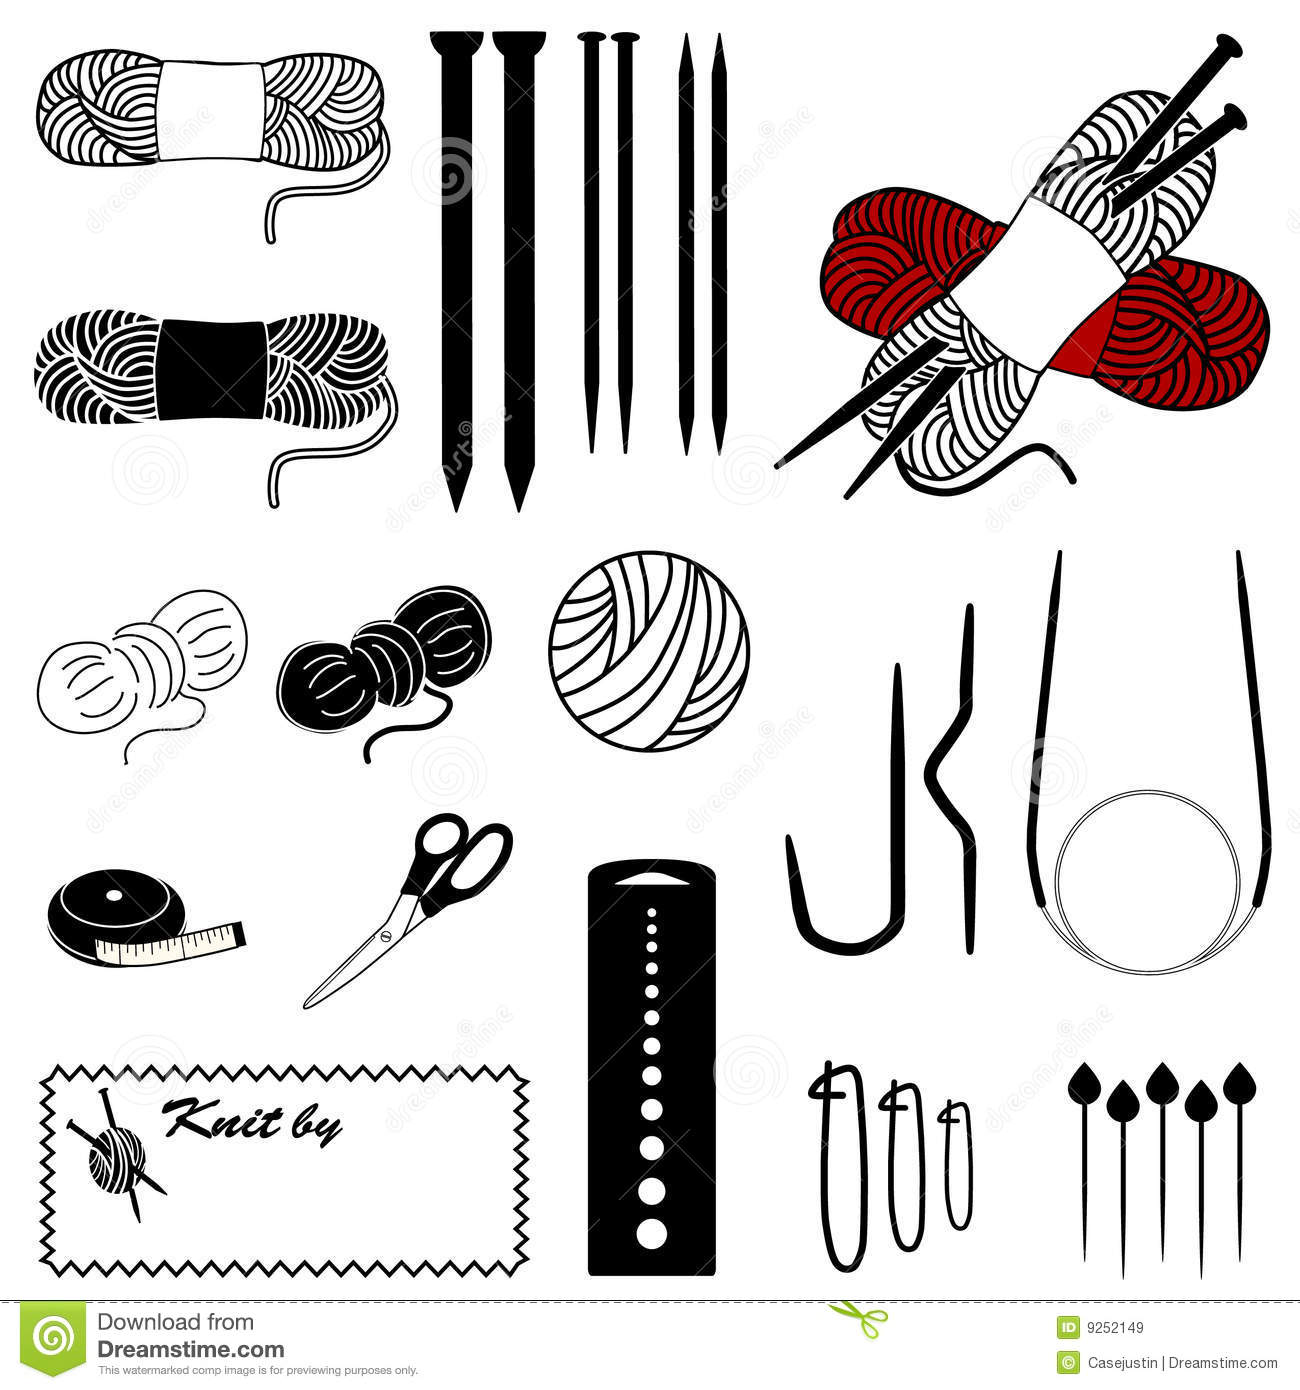 Knitting Icons stock vector. Illustration of measure